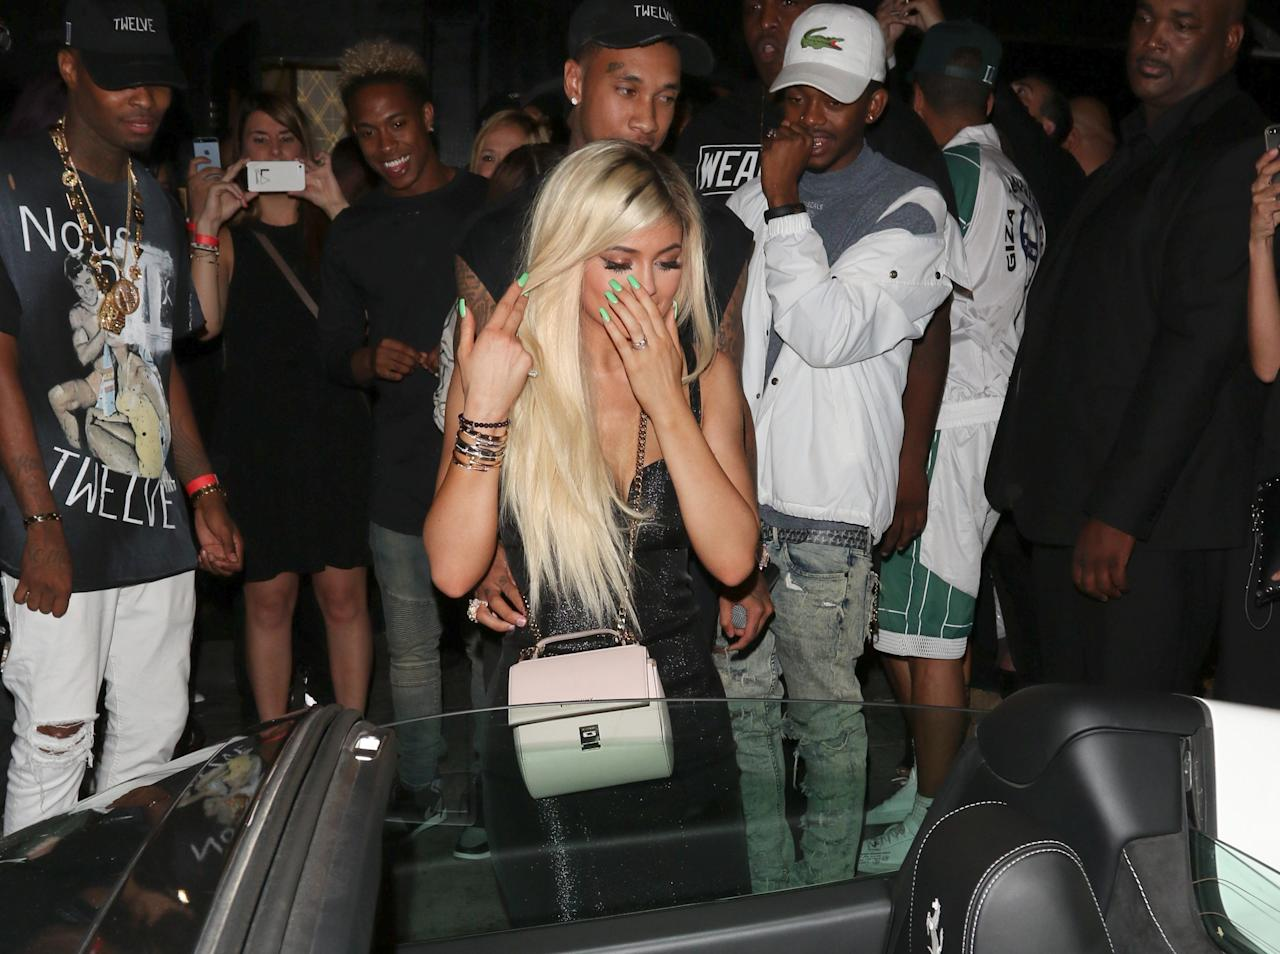 "<p>Did you get a car when you turned 18? It probably wasn't a brand-new $300,000+ Ferrari, was it? Tyga gave Kylie her a <a rel=""nofollow"" href=""http://www.teenvogue.com/story/kylie-jenner-birthday-tyga-new-car?mbid=synd_yahooentertainment"">slick white sports car</a> for her birthday last year, though it was <a rel=""nofollow"" href=""http://www.teenvogue.com/story/kylie-jenner-birthday-ferrari-tyga-lease?mbid=synd_yahooentertainment"">rumored he leased it</a> instead of buying it outright. Either way, we'll take it.</p>"